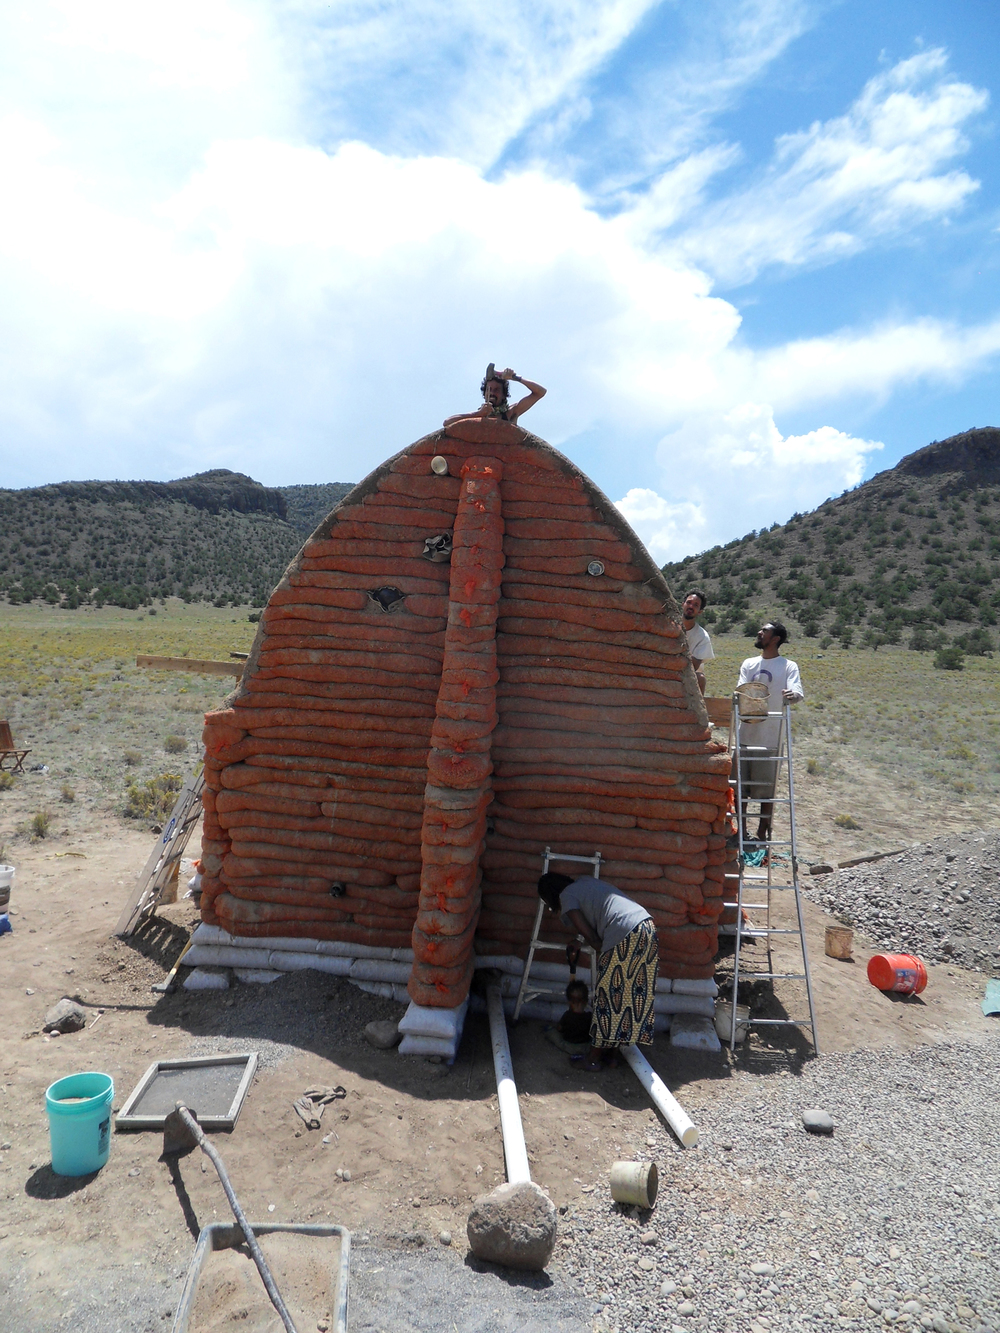 Natural Building with Earthen Hand & Regenerative Lifestyle.  Papillon hammering the last bamboo stake in this hyperadobe wall of a Nubian vault construction in La Garita, Colorado.